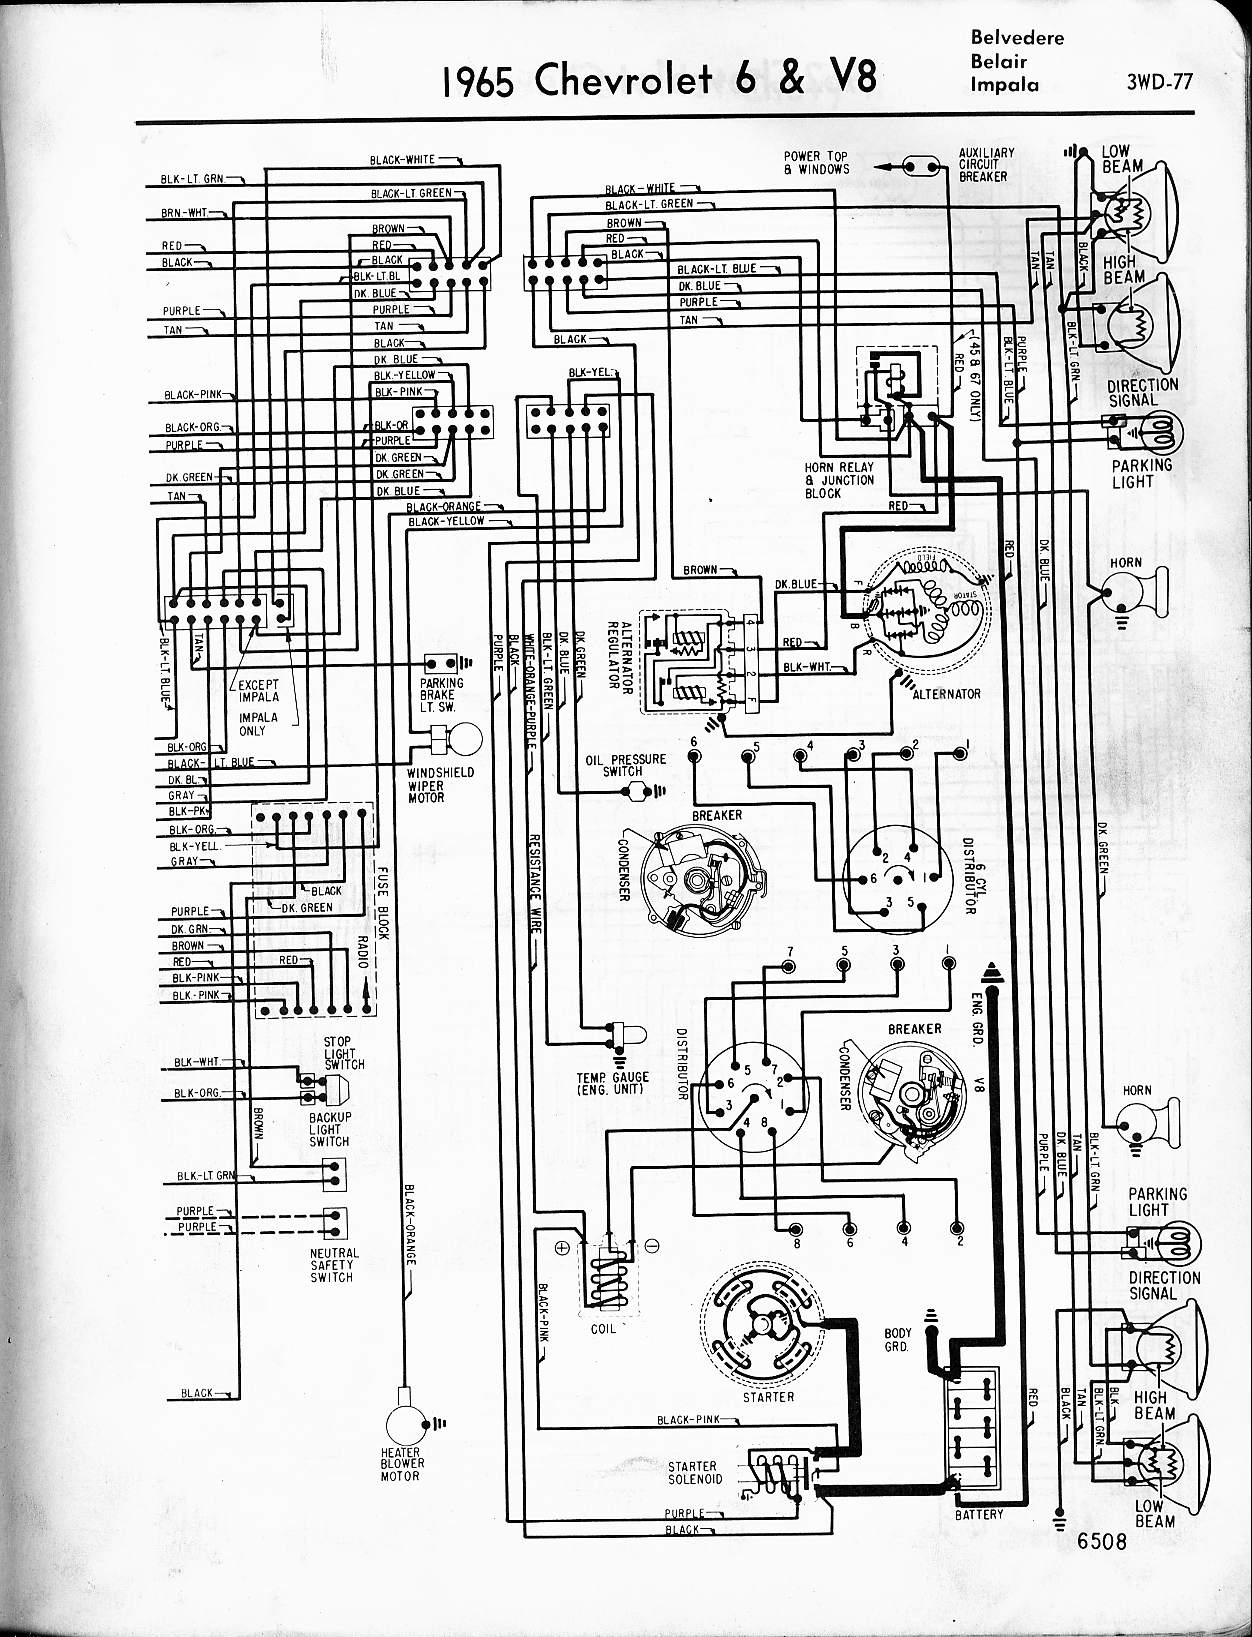 1963 Chevrolet Corvette Dash Wiring Diagram - 08 Jeep Grand Cherokee Fuse  Box - caprice.yenpancane.jeanjaures37.fr | 1965 Corvette Instrument Wiring Diagram |  | Wiring Diagram Resource